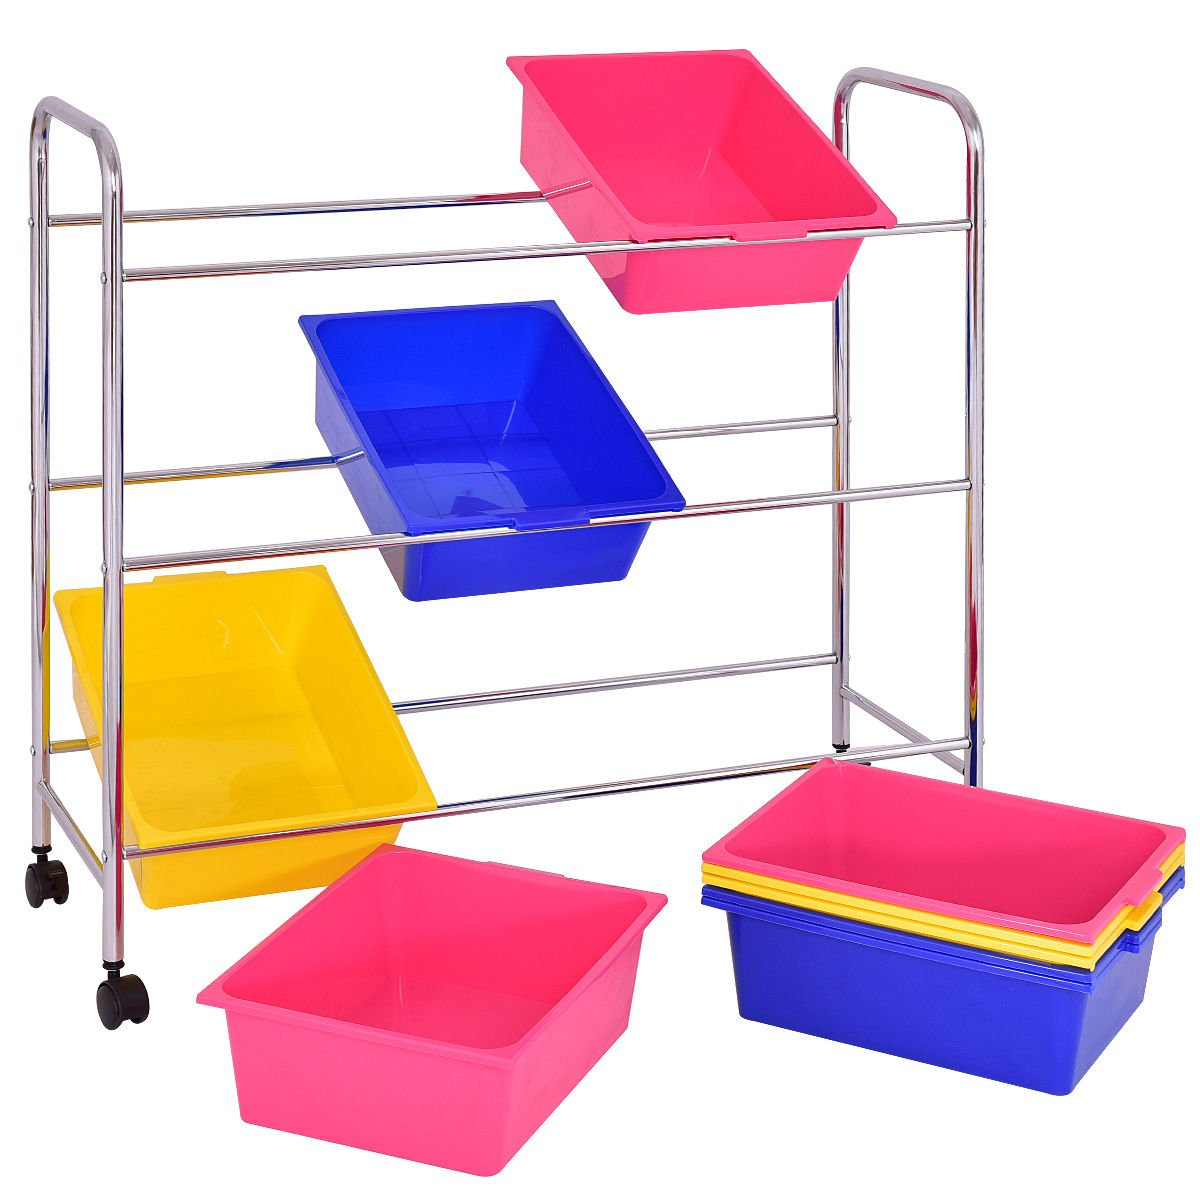 KCHEX>Toy Bin Cart Rack Organizer Kids Childrens Storage Box Playroom Bedroom Shelf>This is Our 9 Plastic Drawer Rolling cart, which is of and Brand New. Thanks to its Colorful Plastic by KCHEX (Image #5)